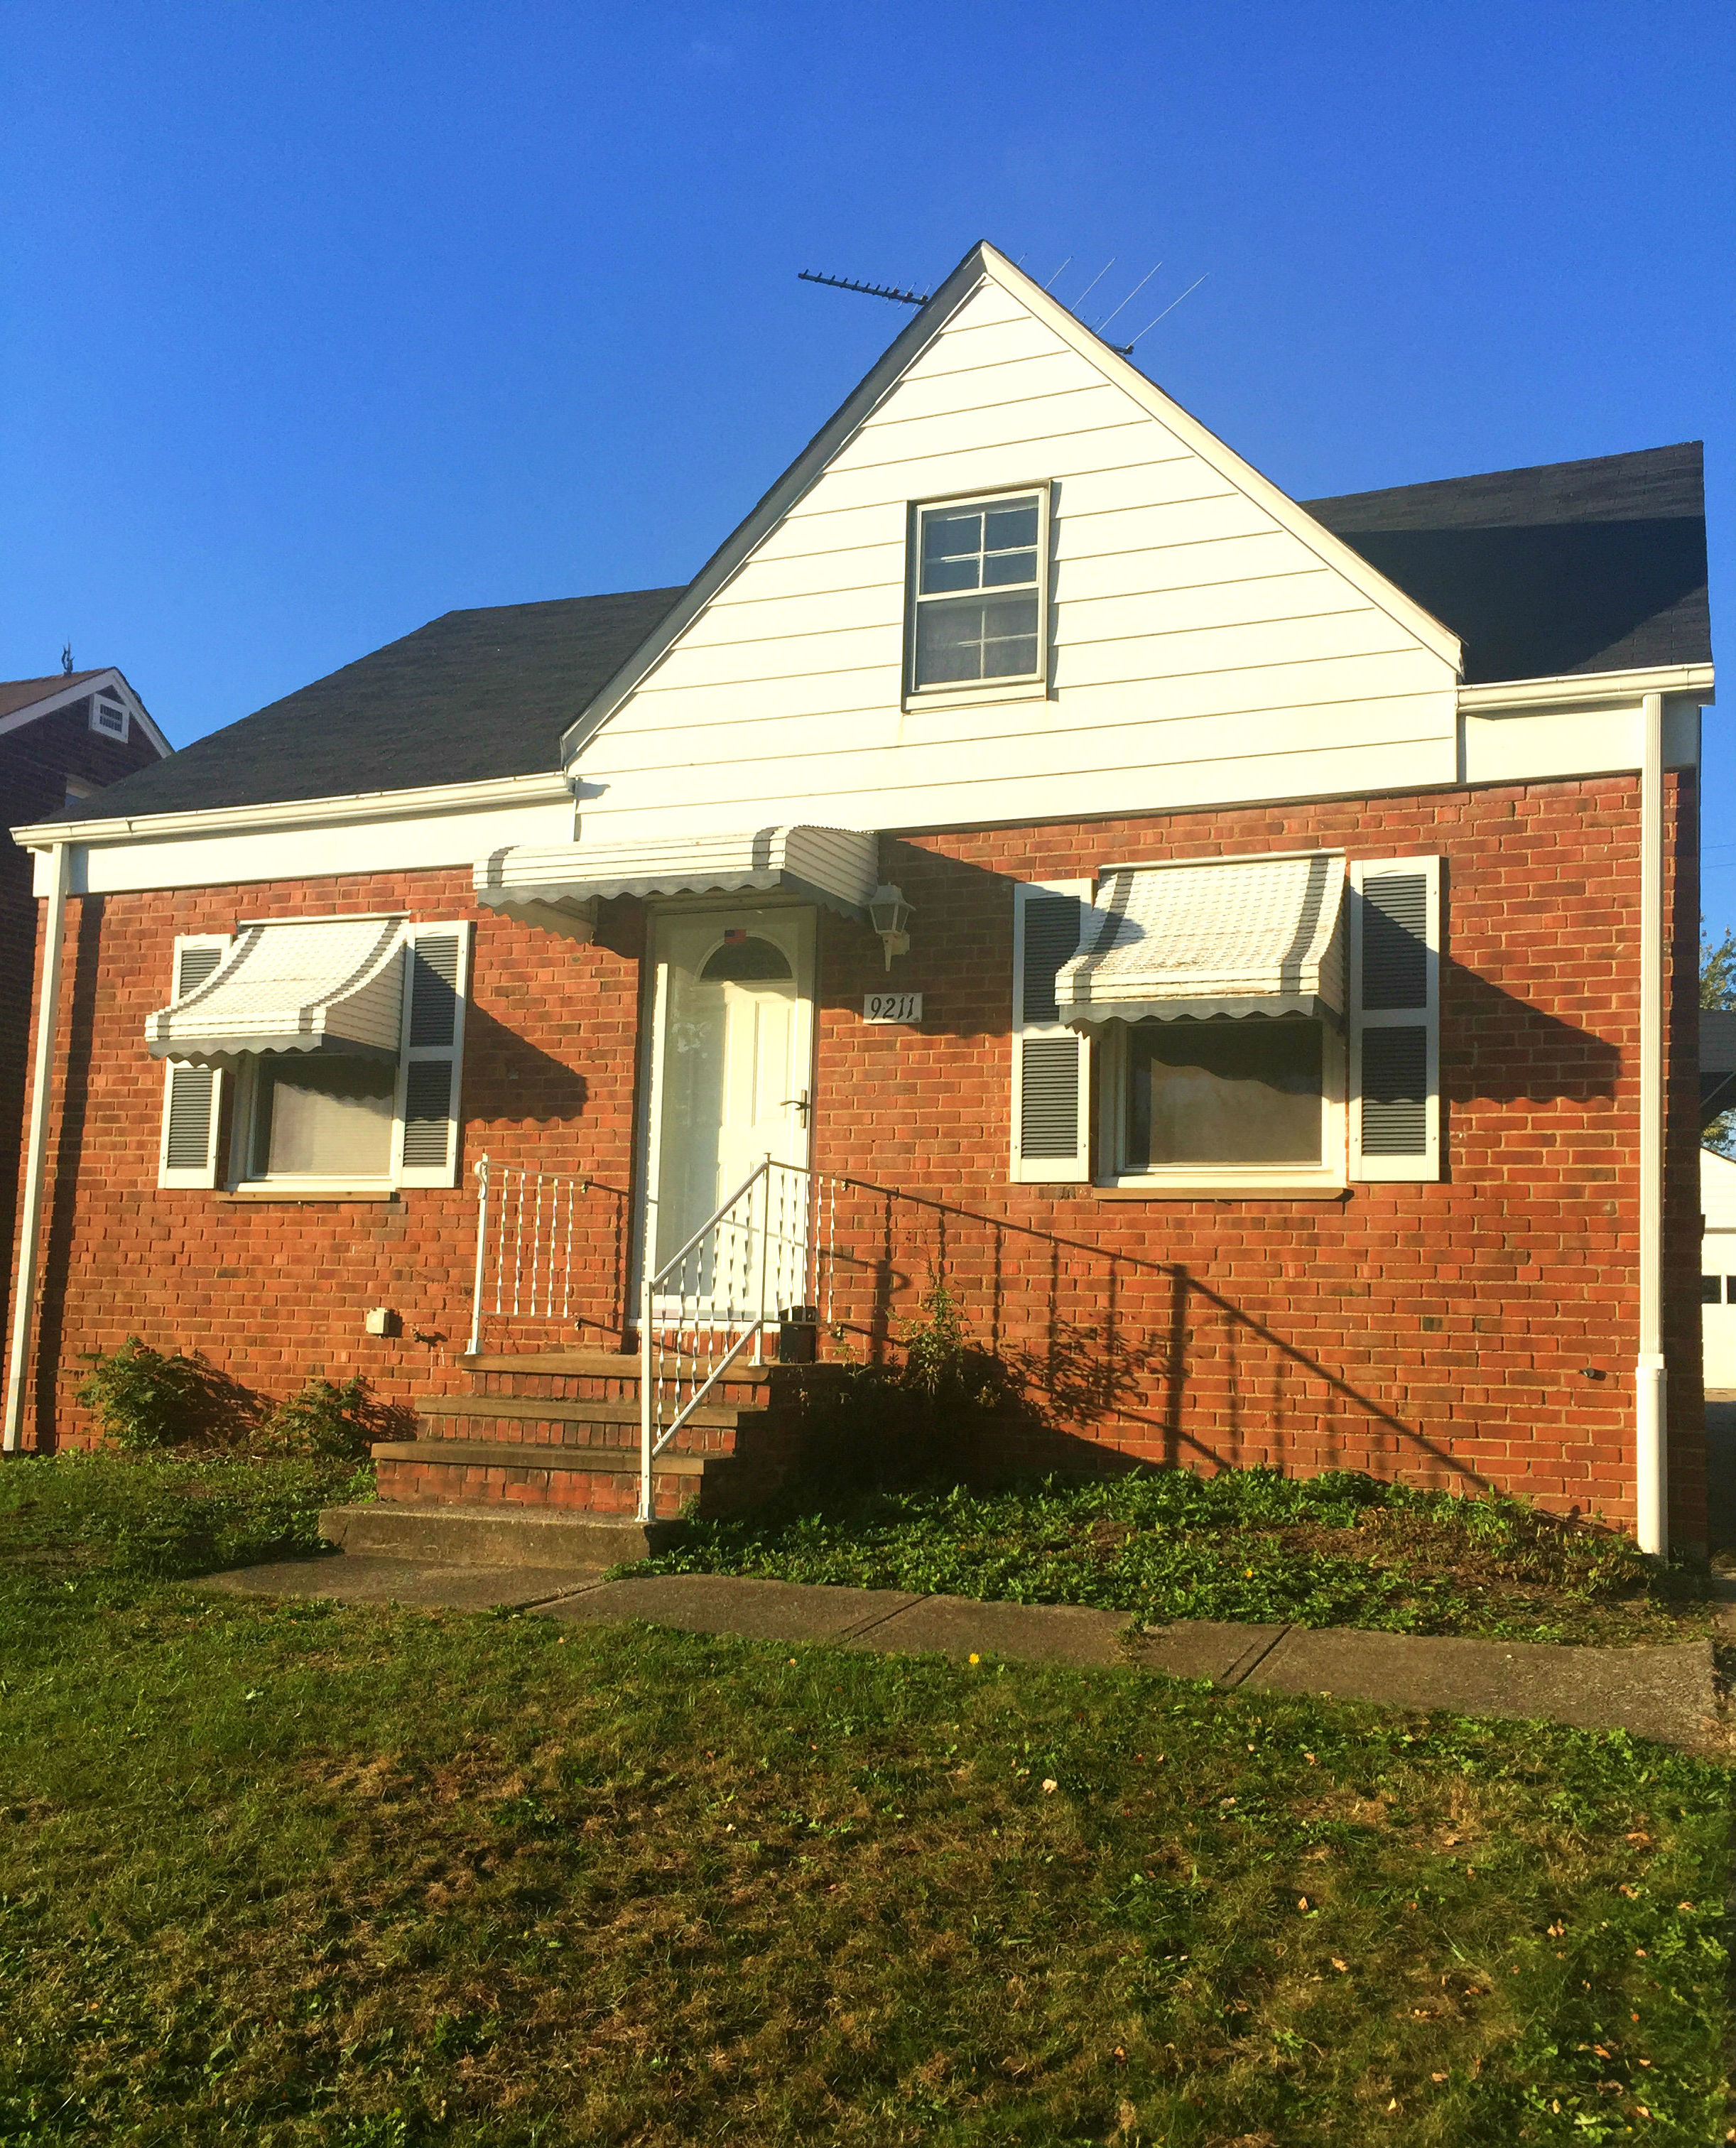 9211 South Highland Ave., Garfield Hts. | 3 bed 1 bath | 1,131 Sq. Ft. | $35,000